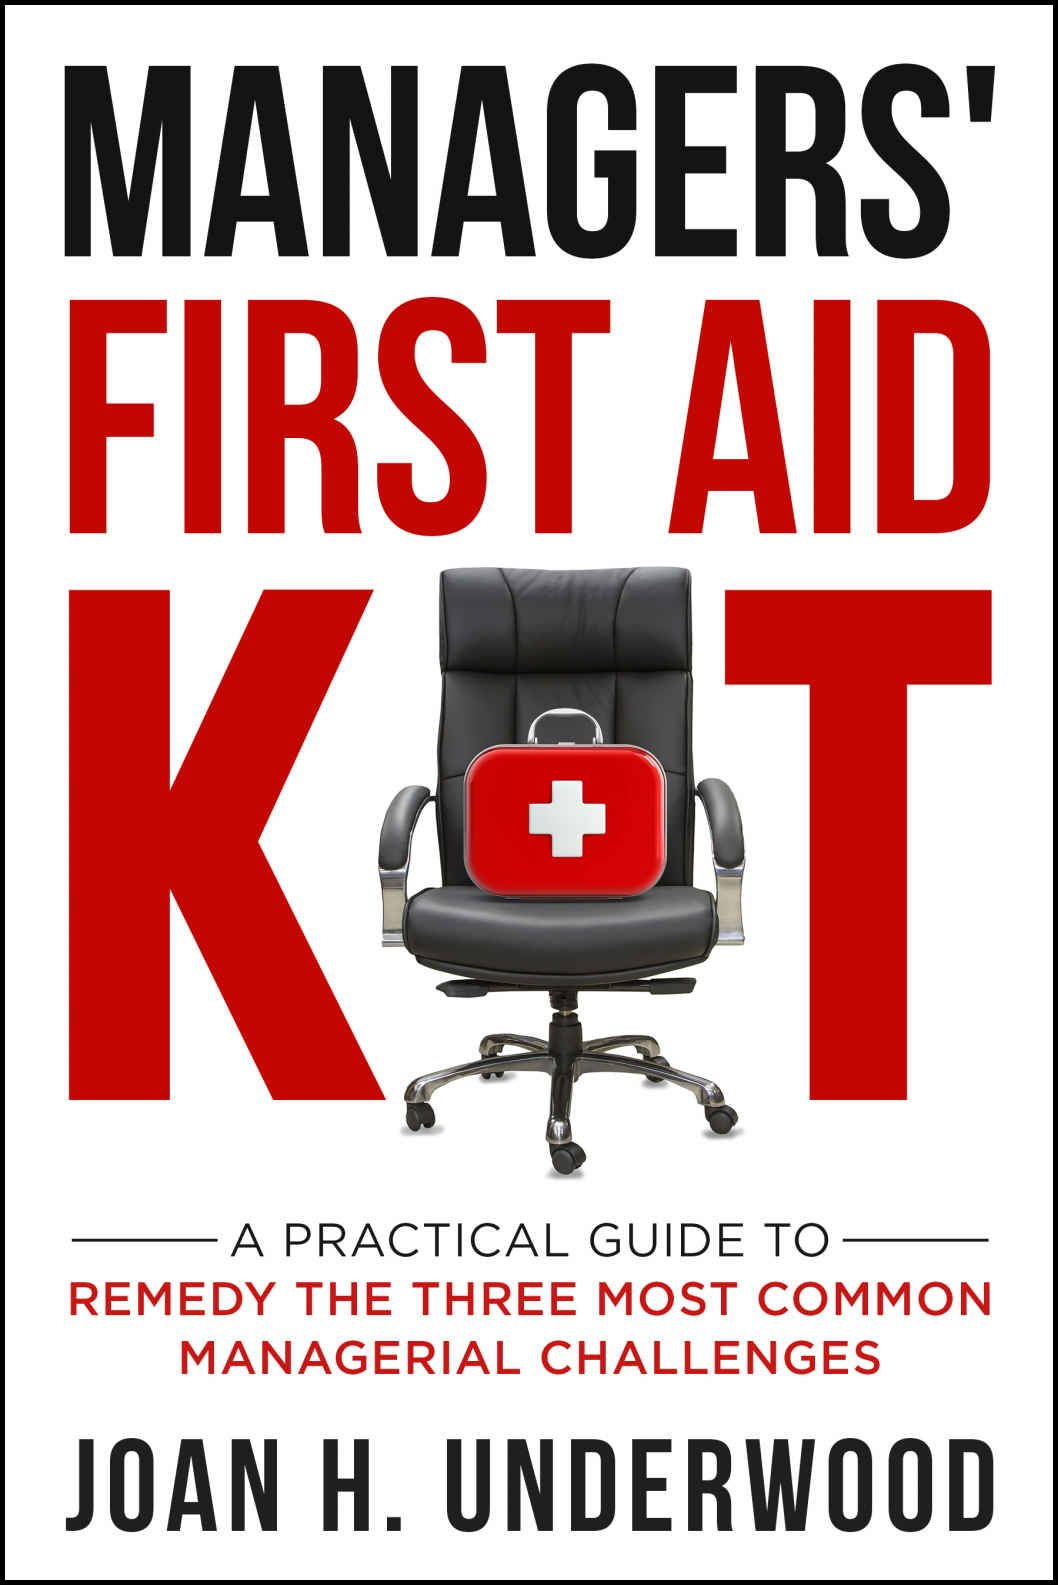 Managers First Aid Kit by Joan Underwood - Book Cover